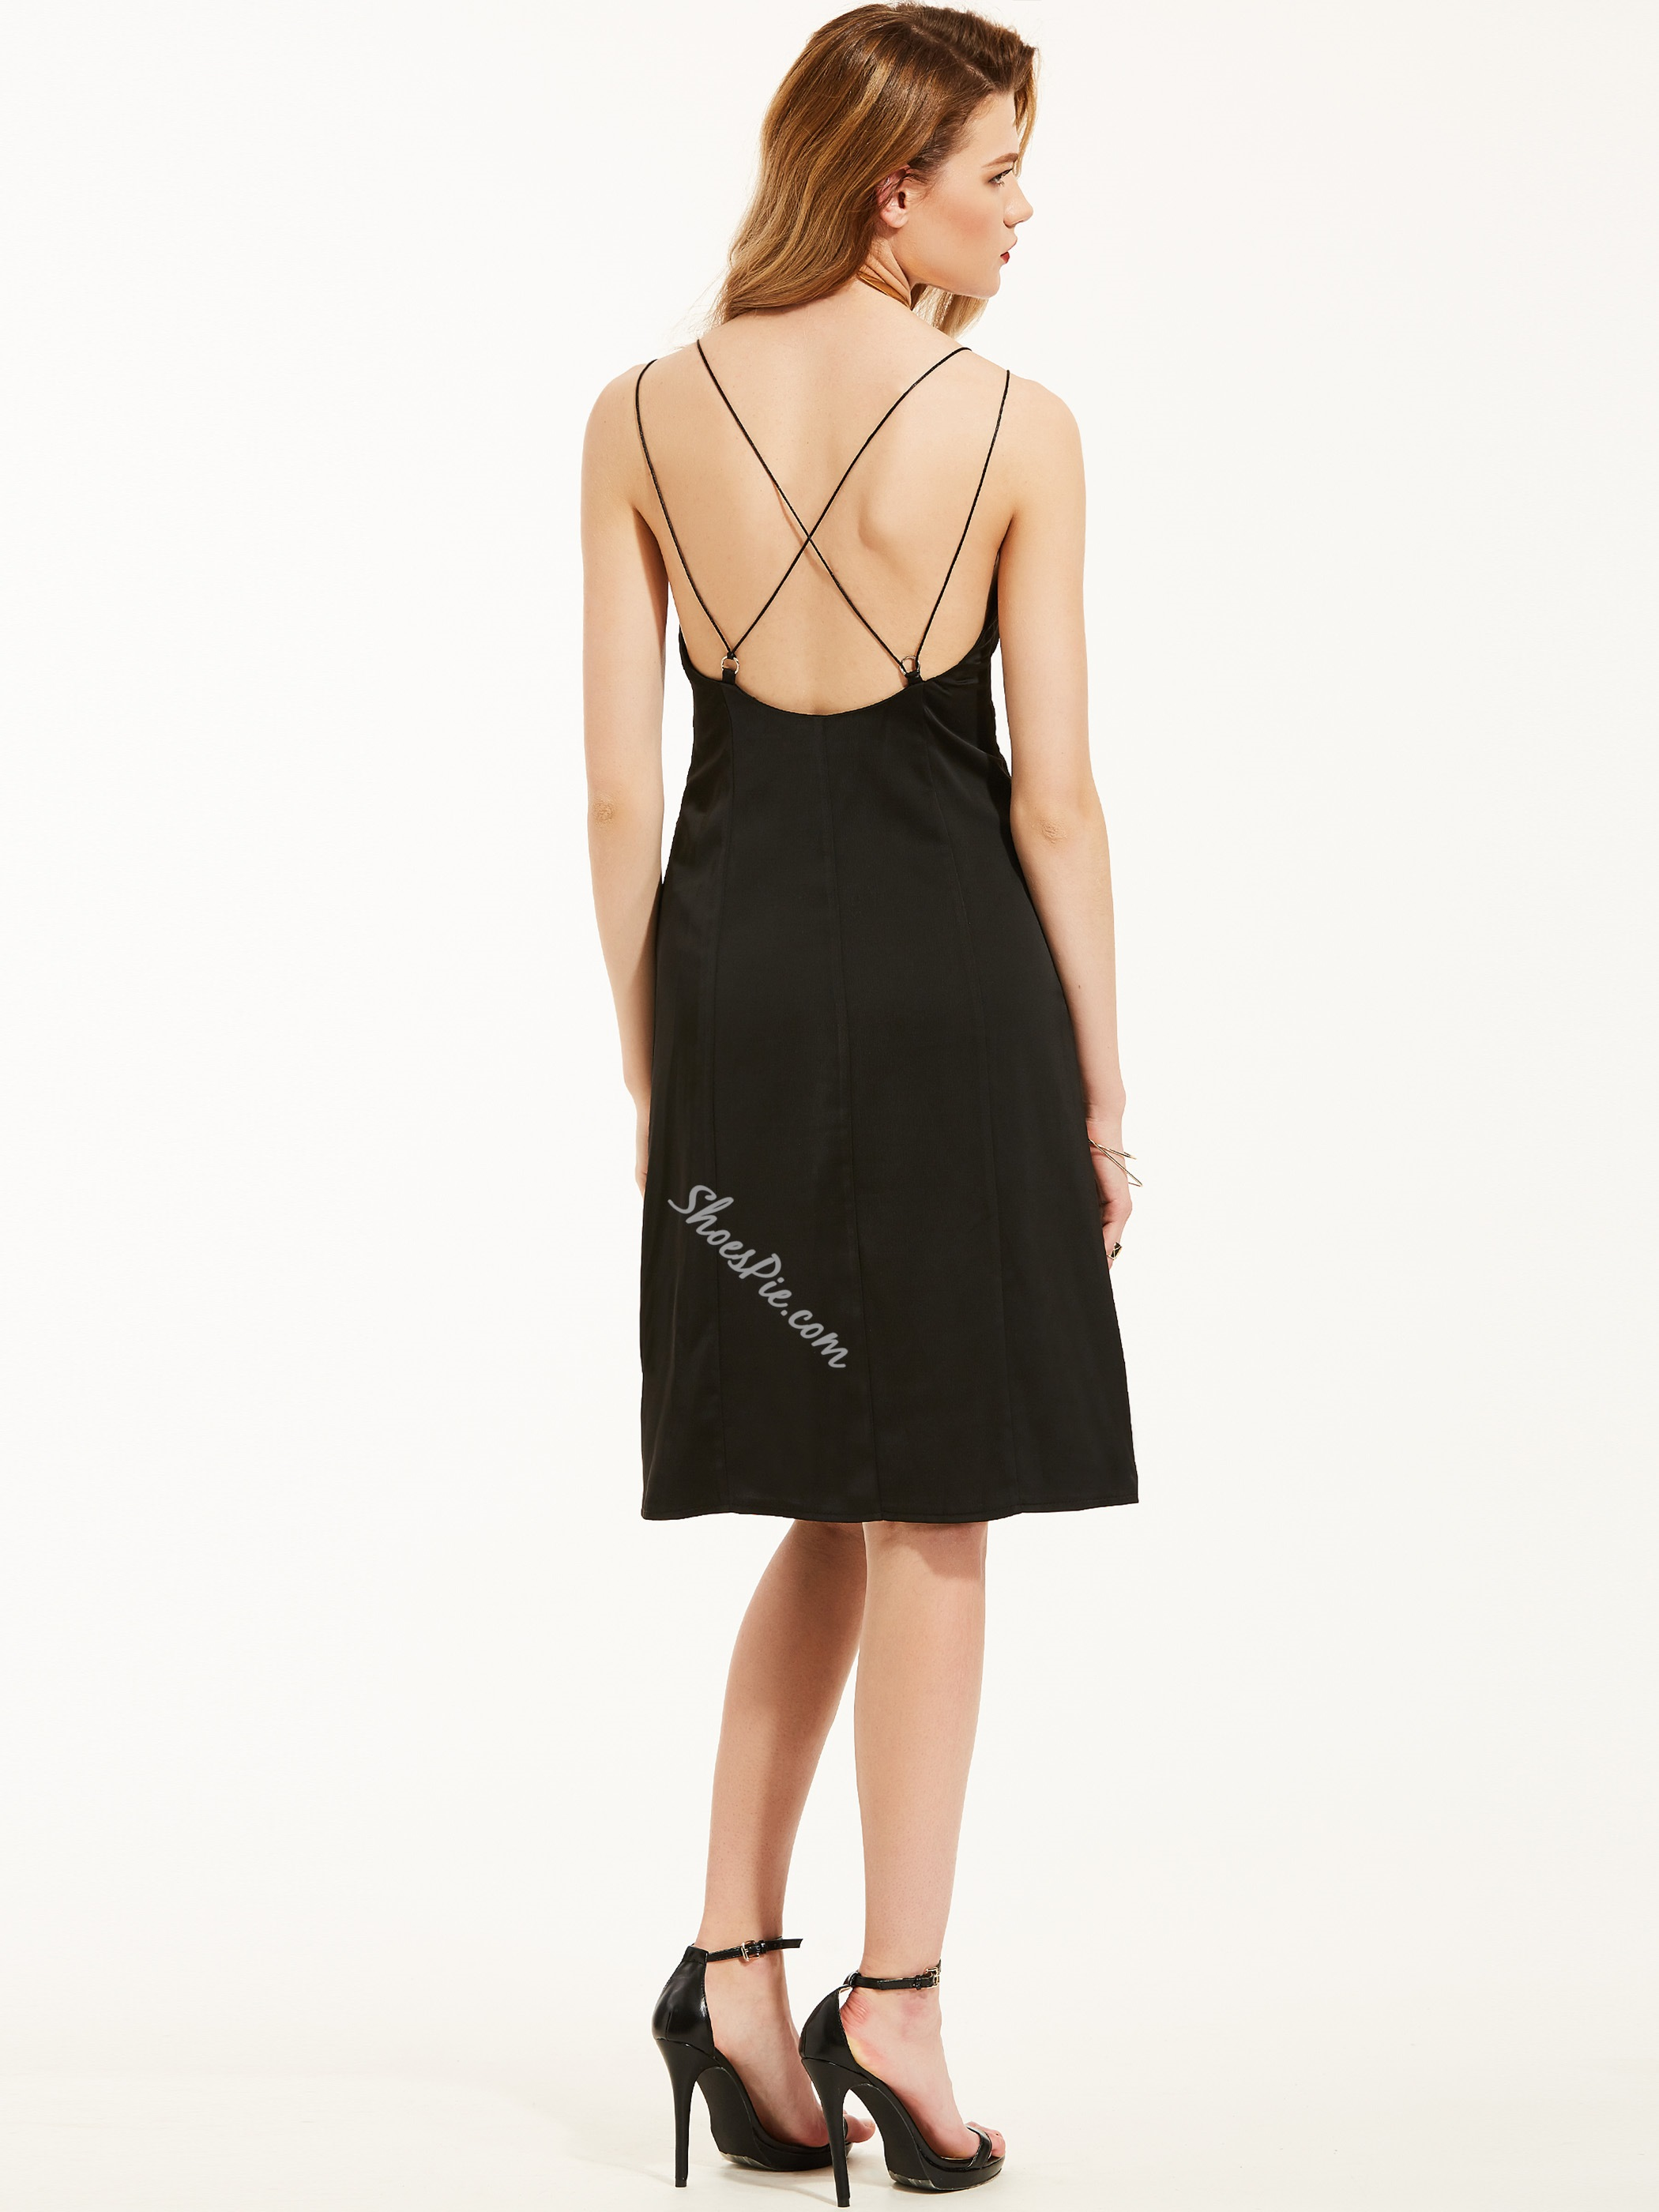 Spaghetti Strap V-Neck Backless A-Line Dress